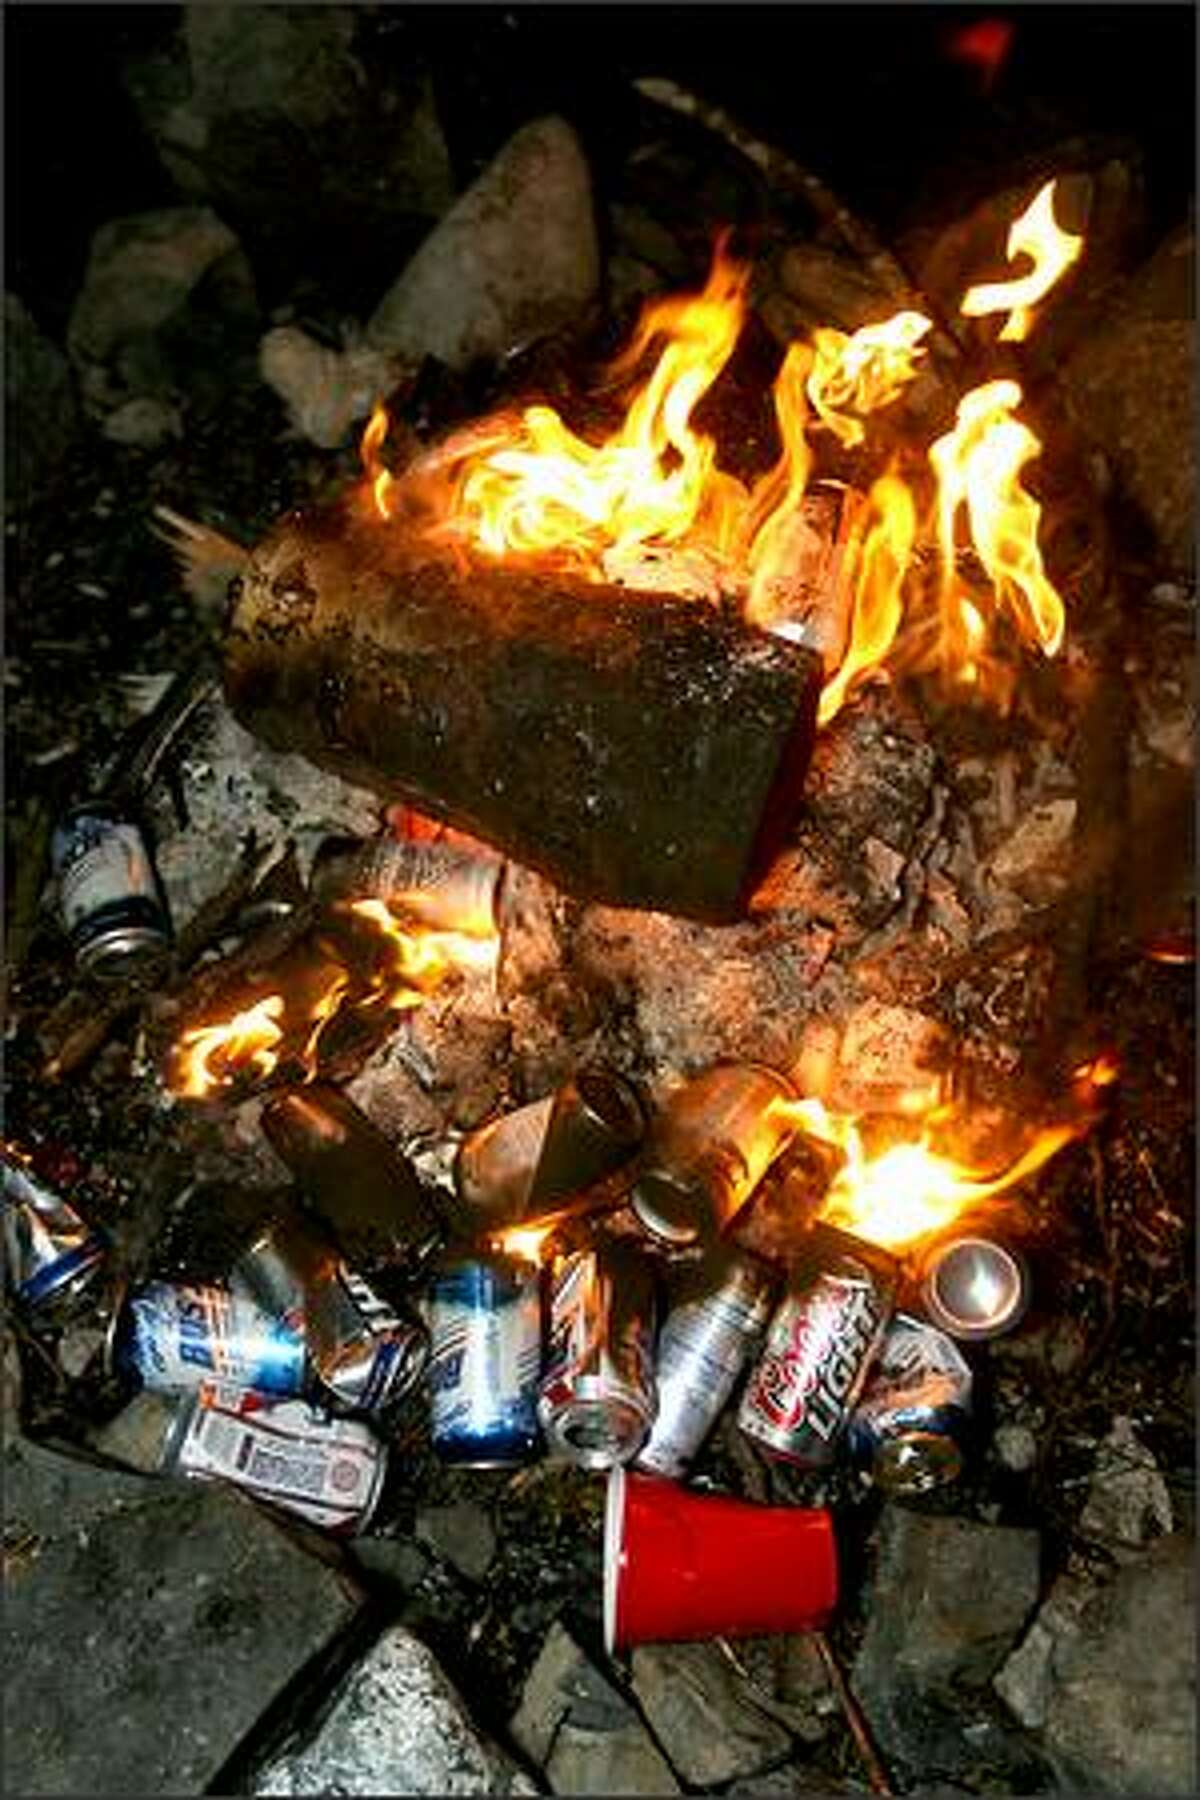 Some of the remnants of the party and bonfire found by the